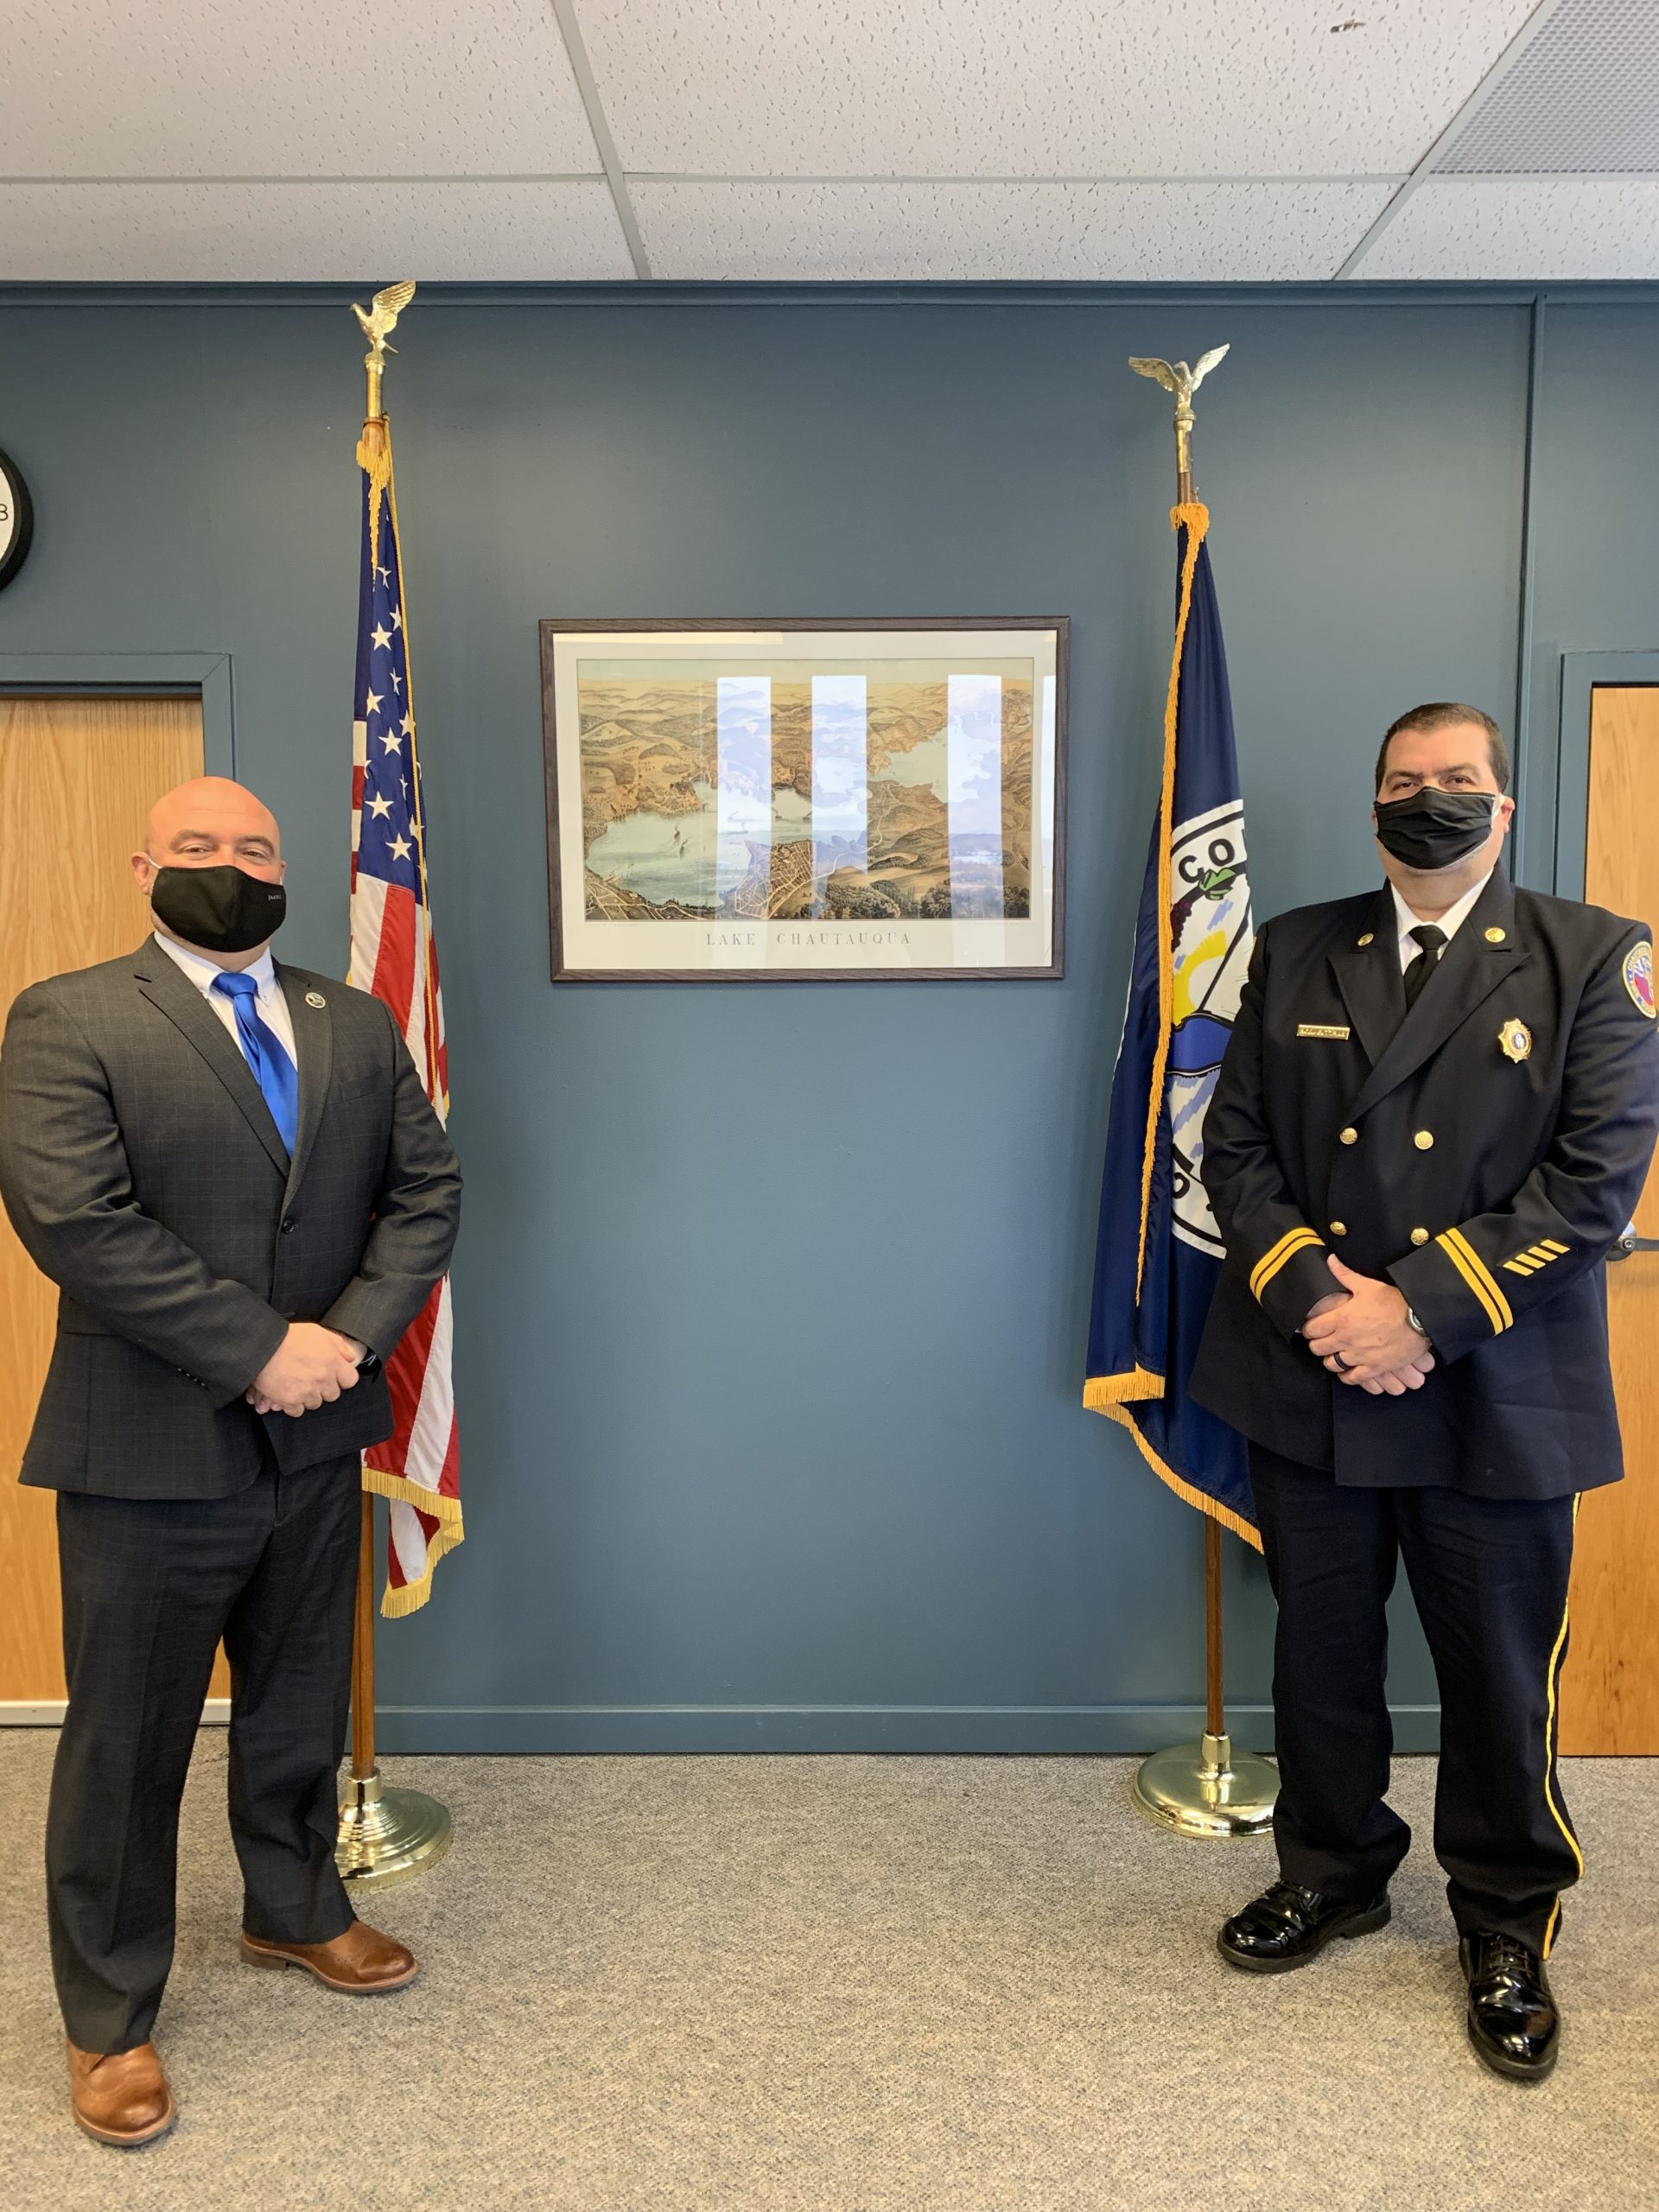 Chautauqua County Executive PJ Wendel (left) welcomes Noel Guttman as the County's next Emergency Services Director.